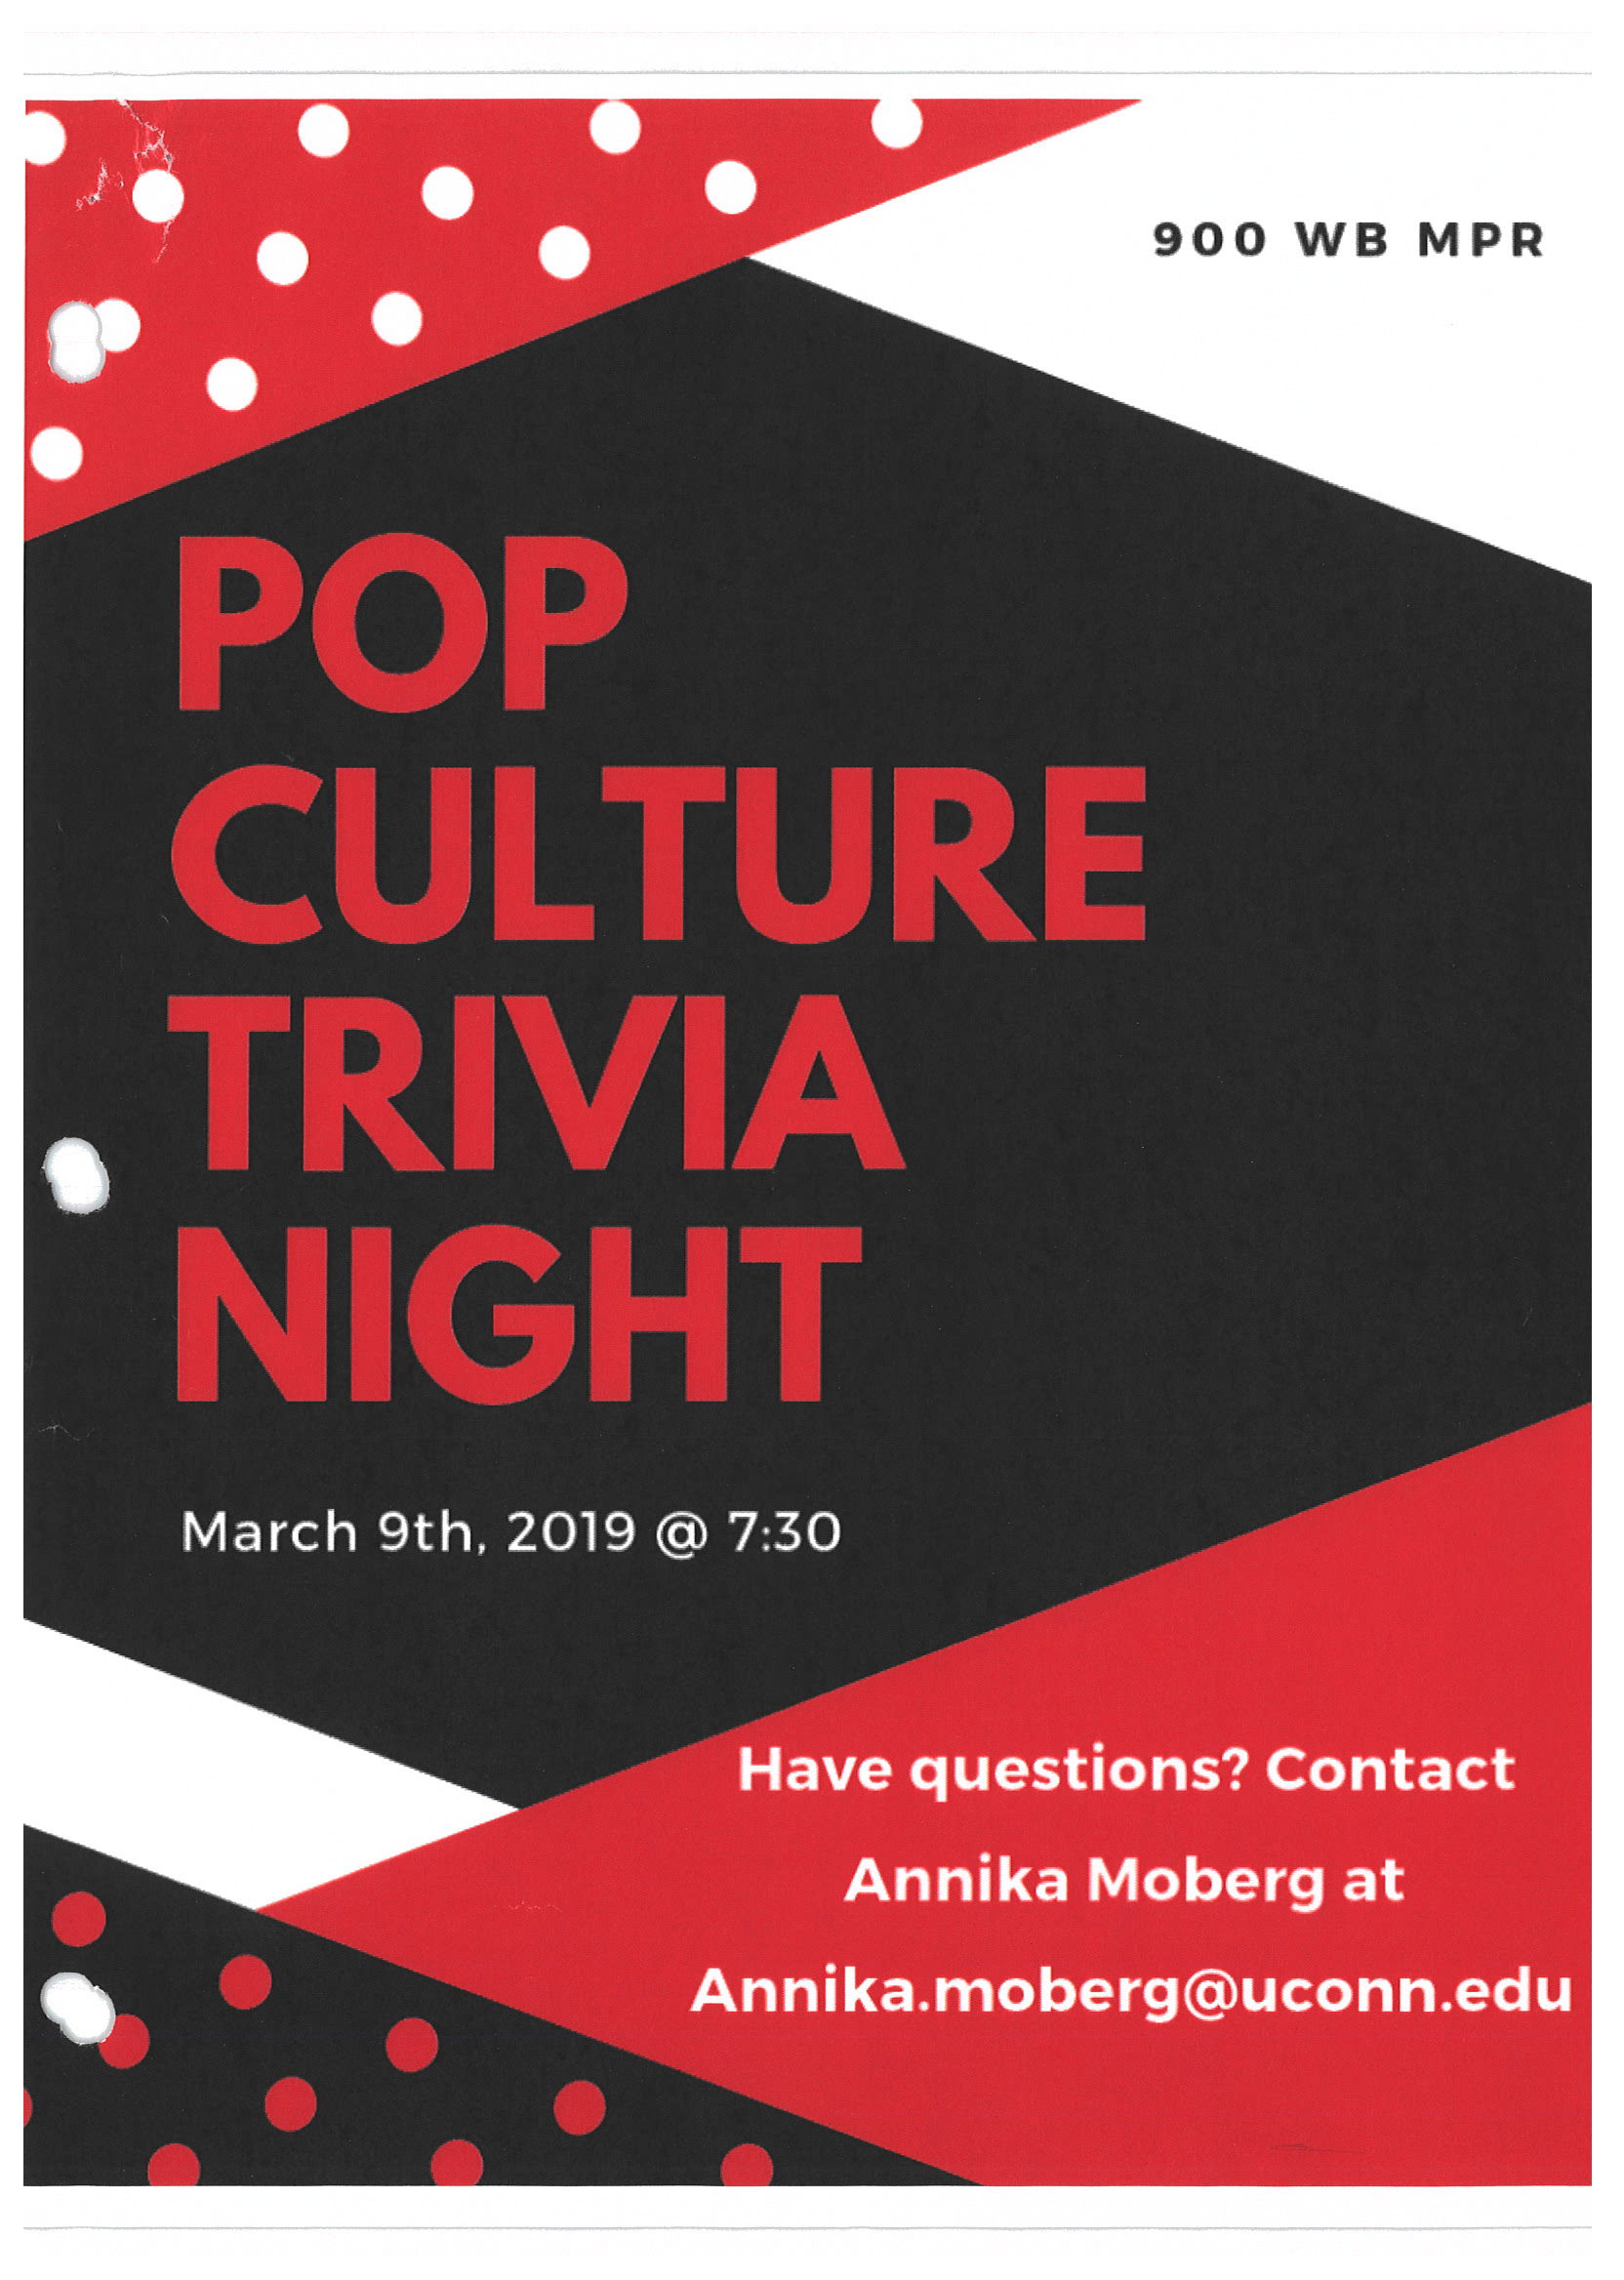 Stamford programming flyer example: Pop Culture Trivia Night